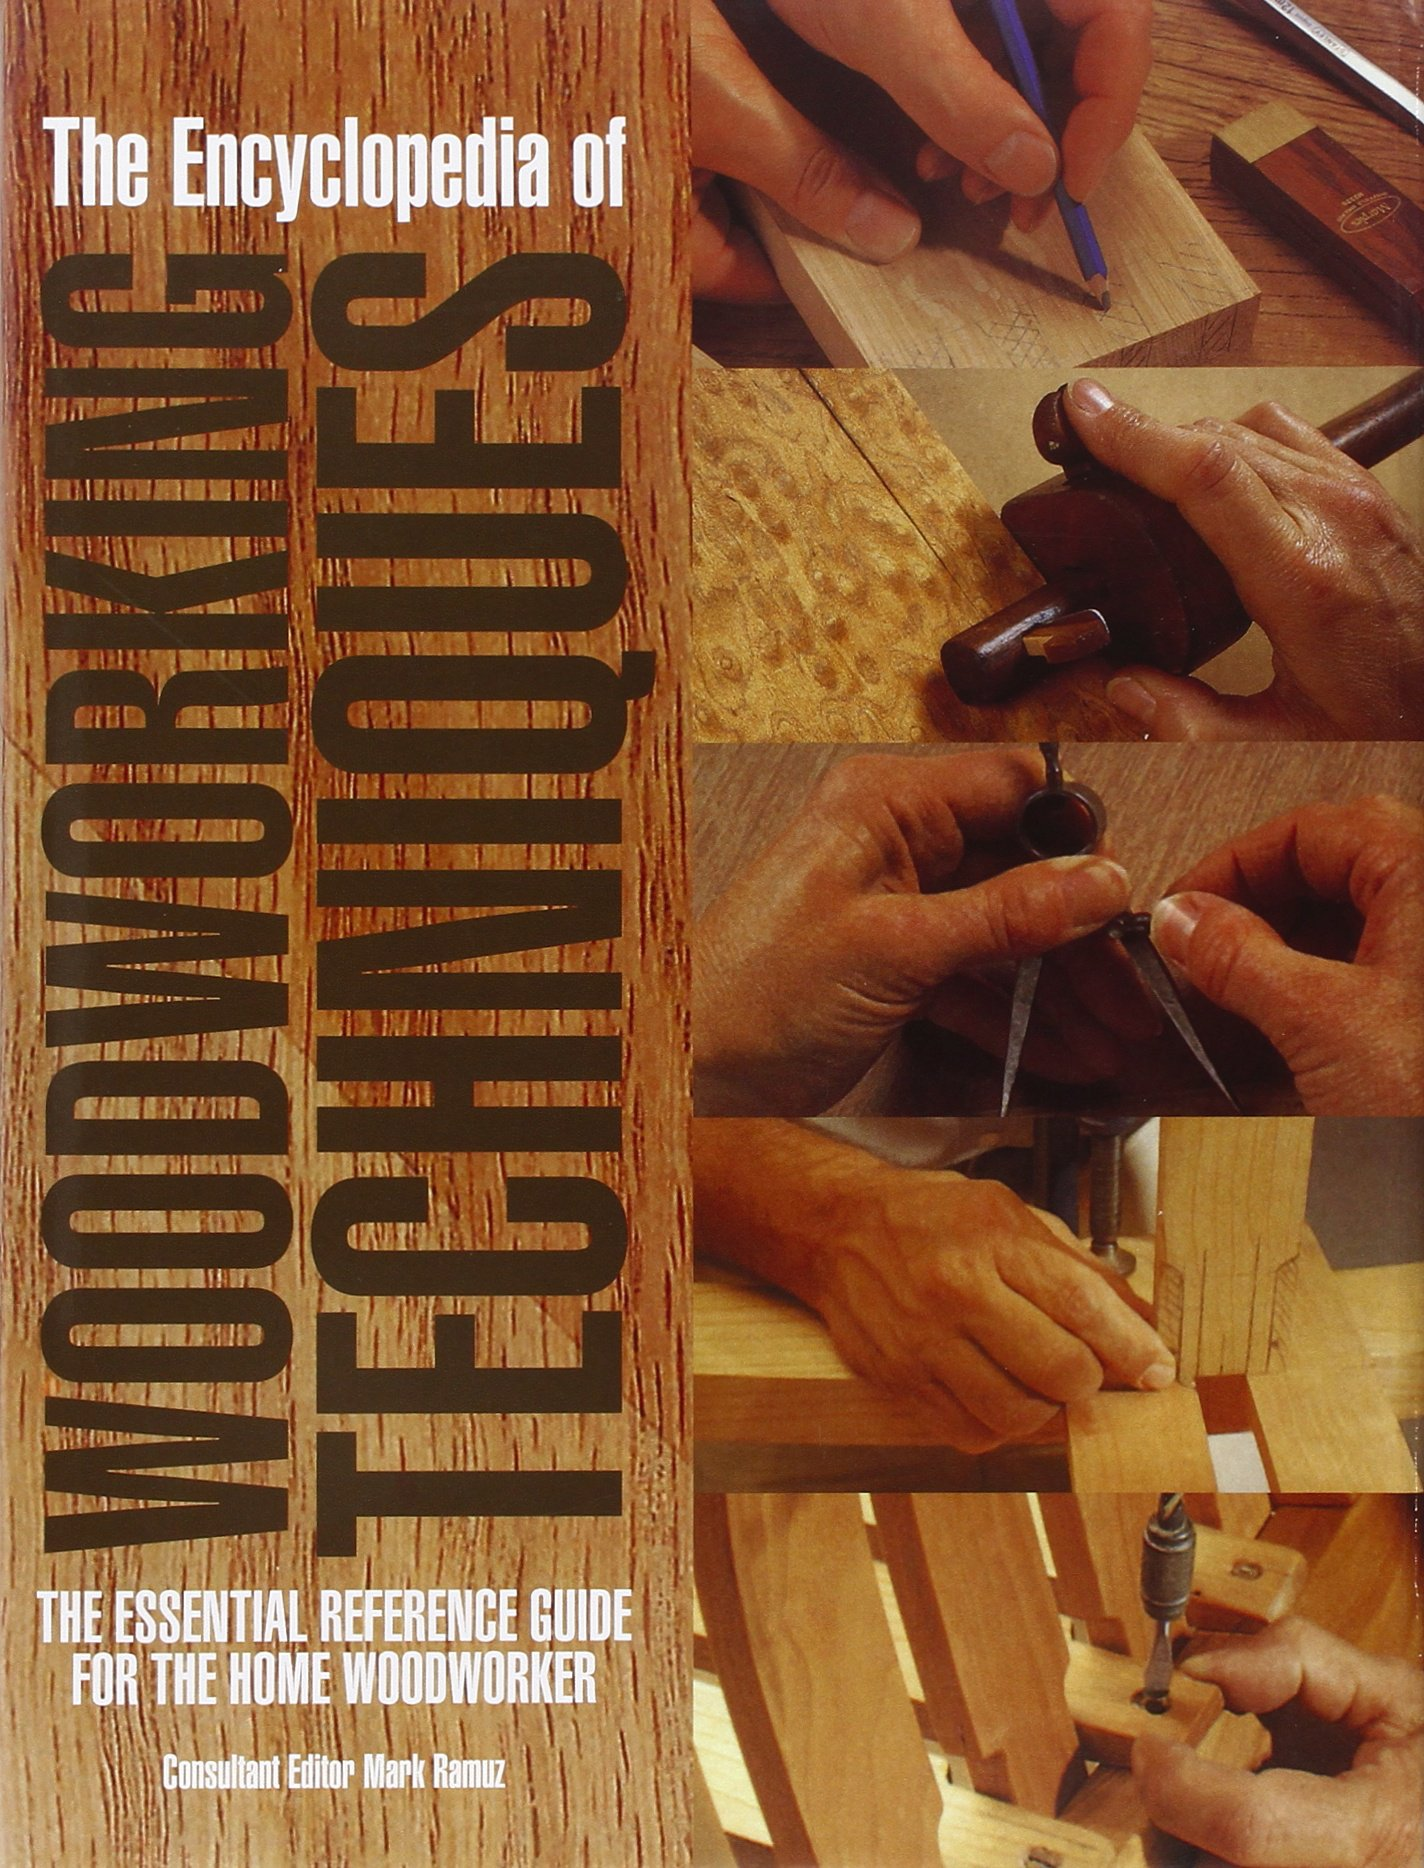 The Encyclopedia of Woodworking Techniques: The Essential Reference Guide for the Home Woodworker